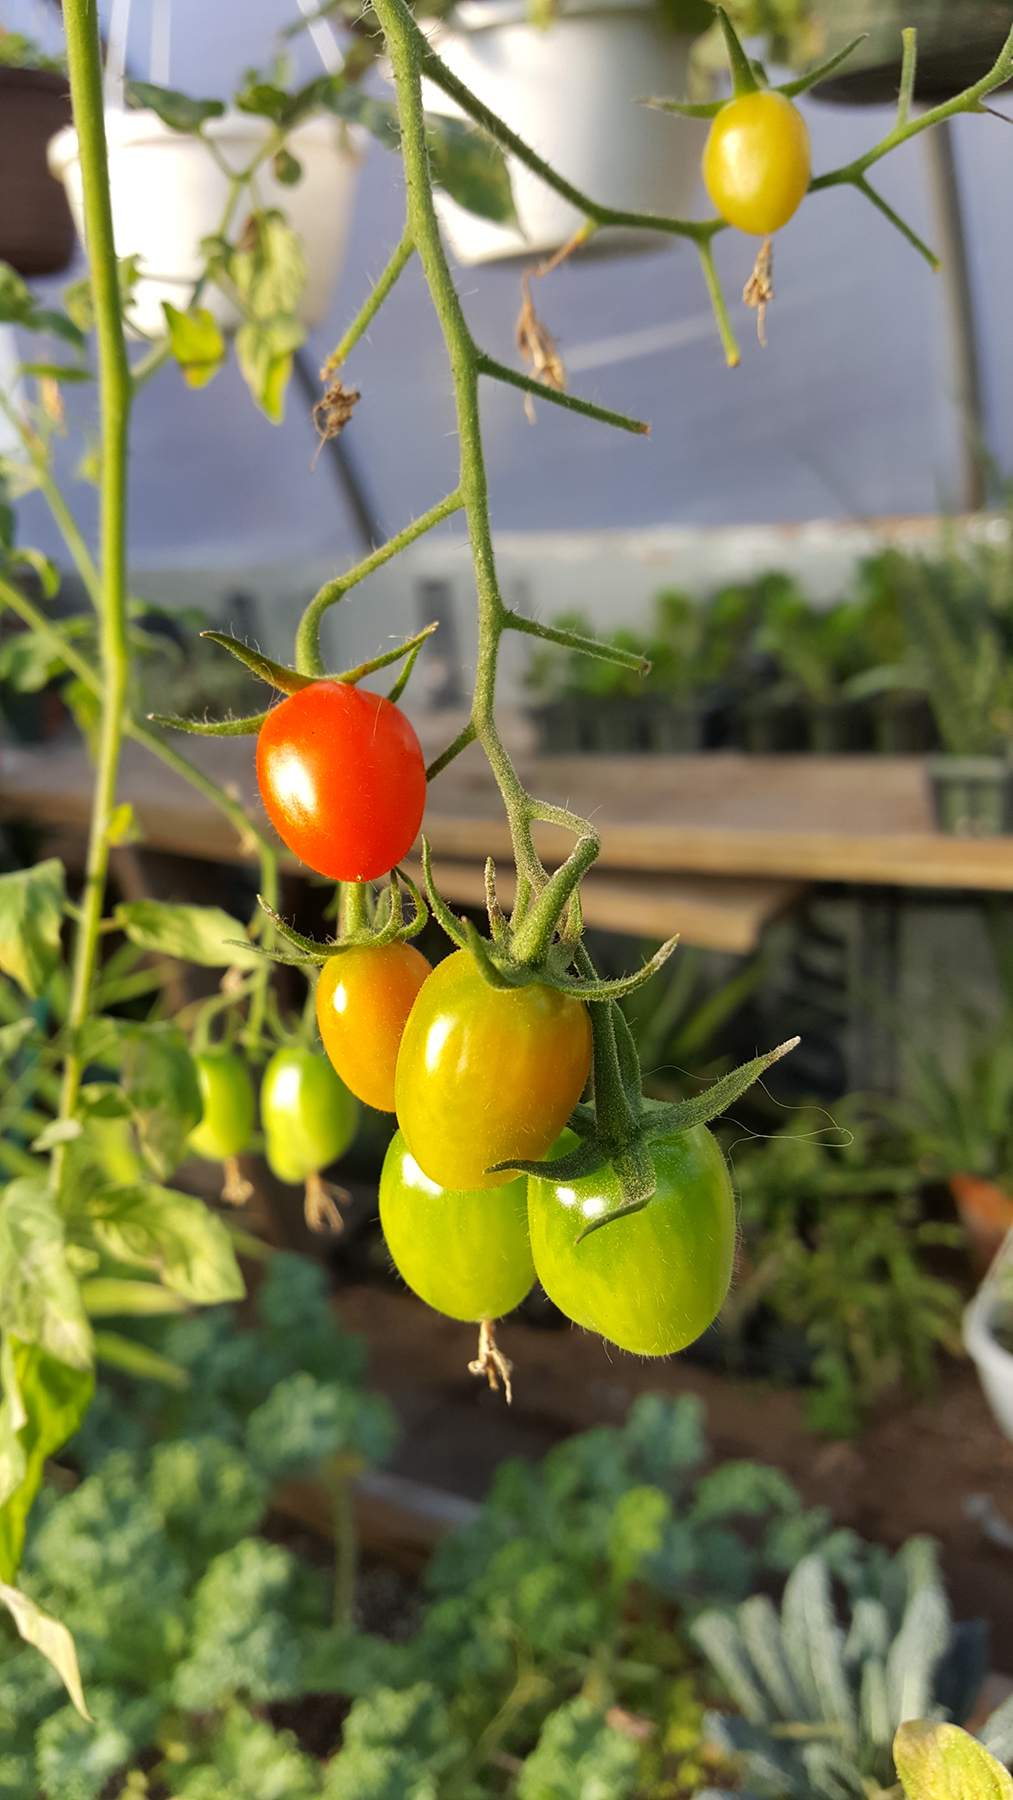 Tomatoes growing at MV Greenhouse